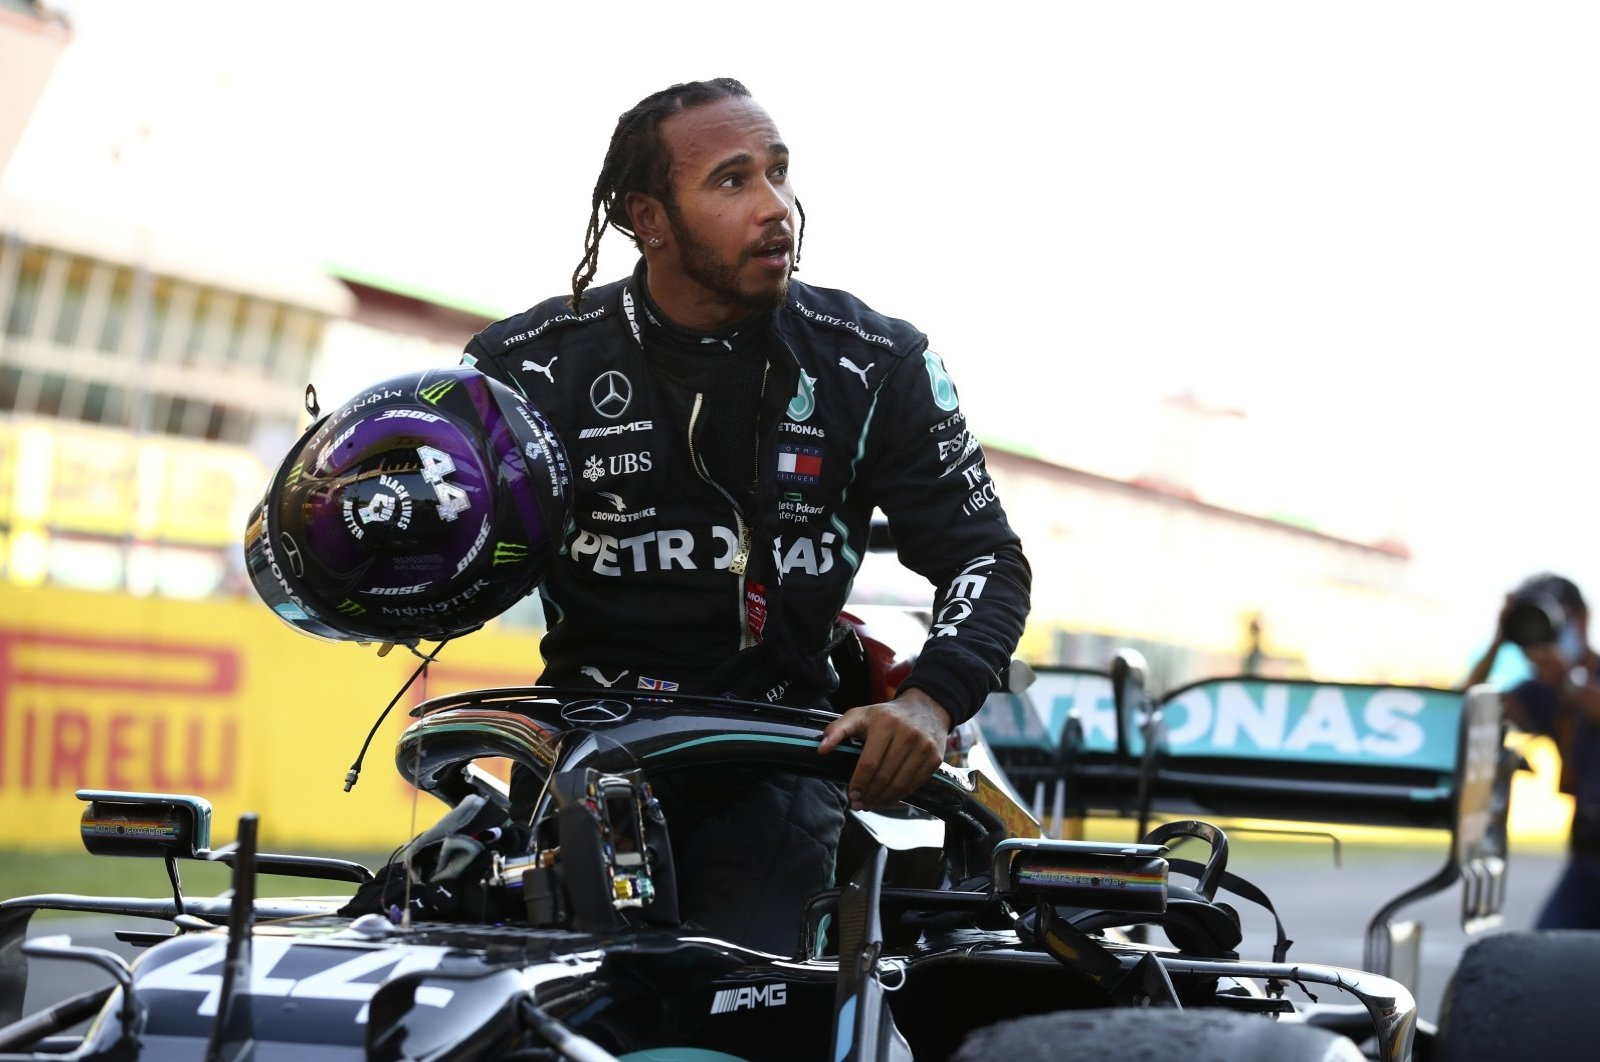 Lewis Hamilton steps out of his car after winning the Formula 1 Tuscany Grand Prix, in Scarperie, Italy, Sept. 13, 2020. (AP Photo)